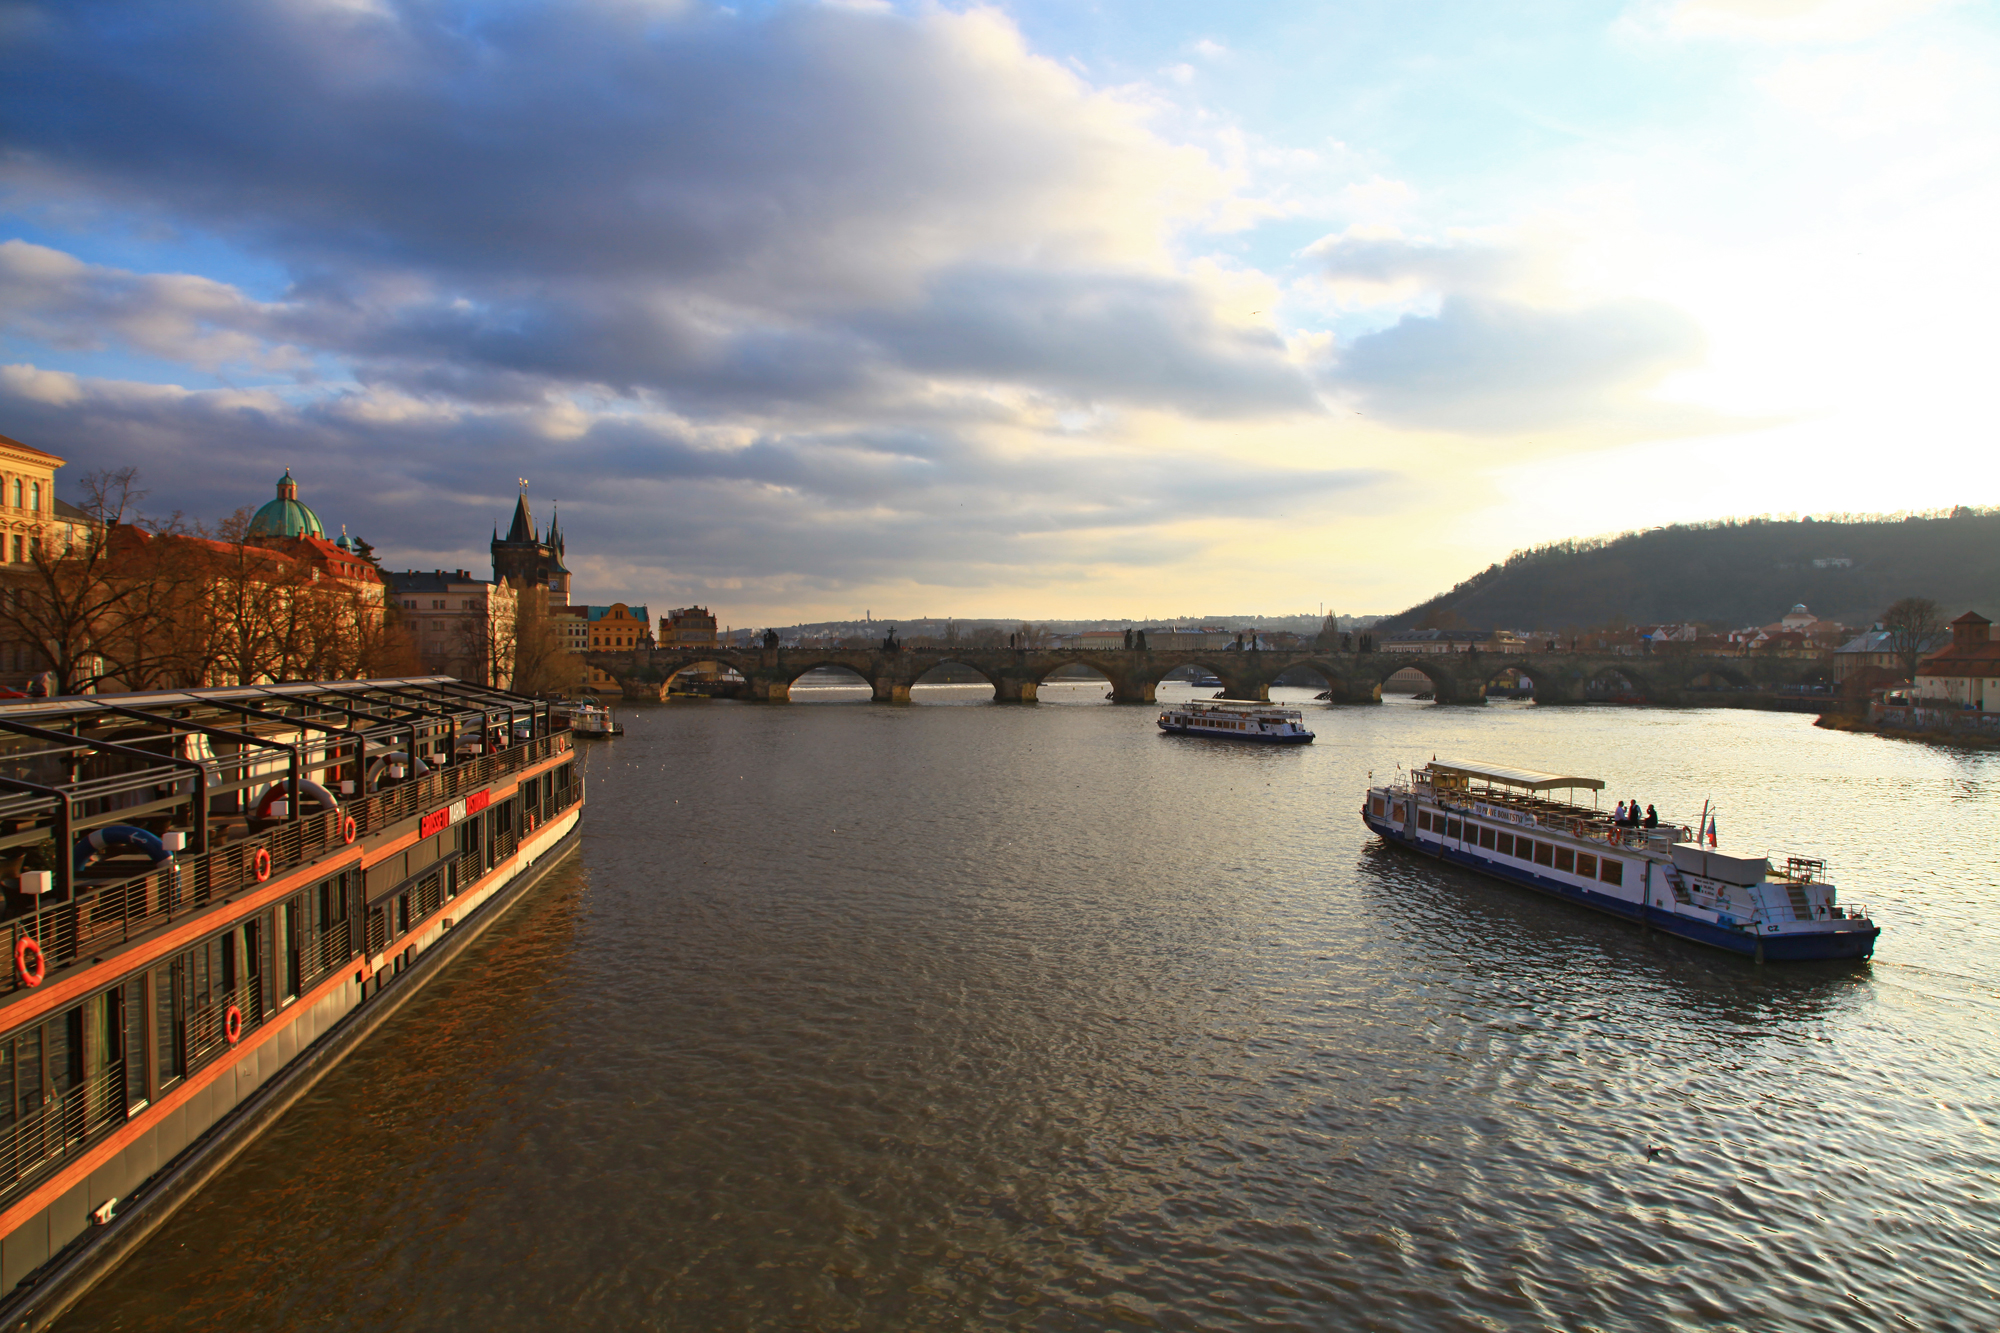 Charles Bridge is a famous historic bridge that crosses the Vltava river in Prague. The construction started in 1357 under the auspices of King Charles IV, and finished in the beginning of the 15th century.